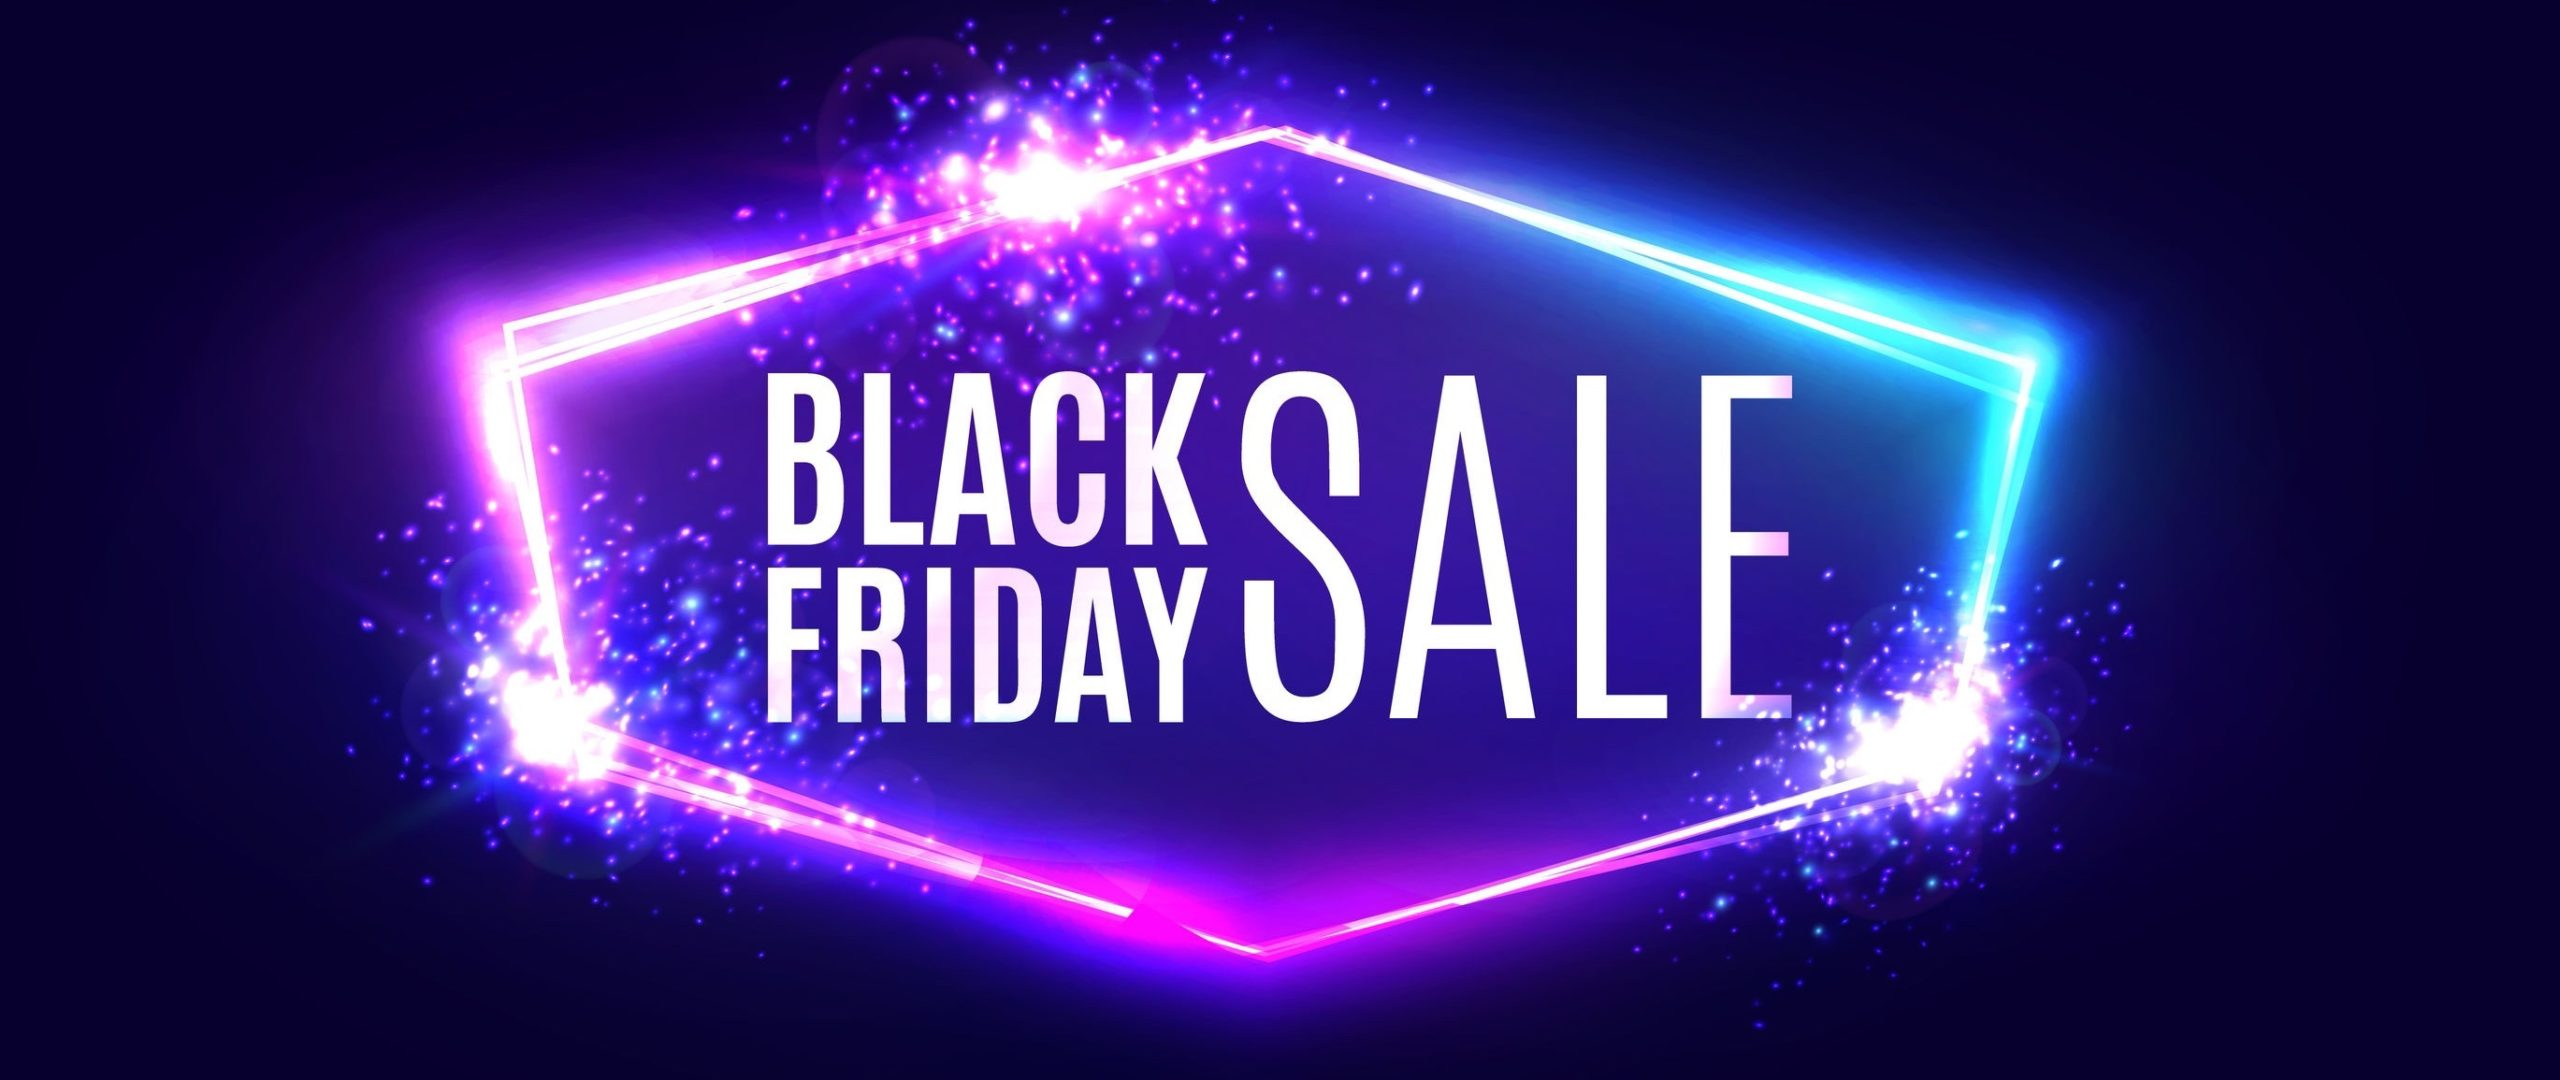 Get It While It's Hot 🔥! Our Annual Black Friday Deals for 2020 Are Here